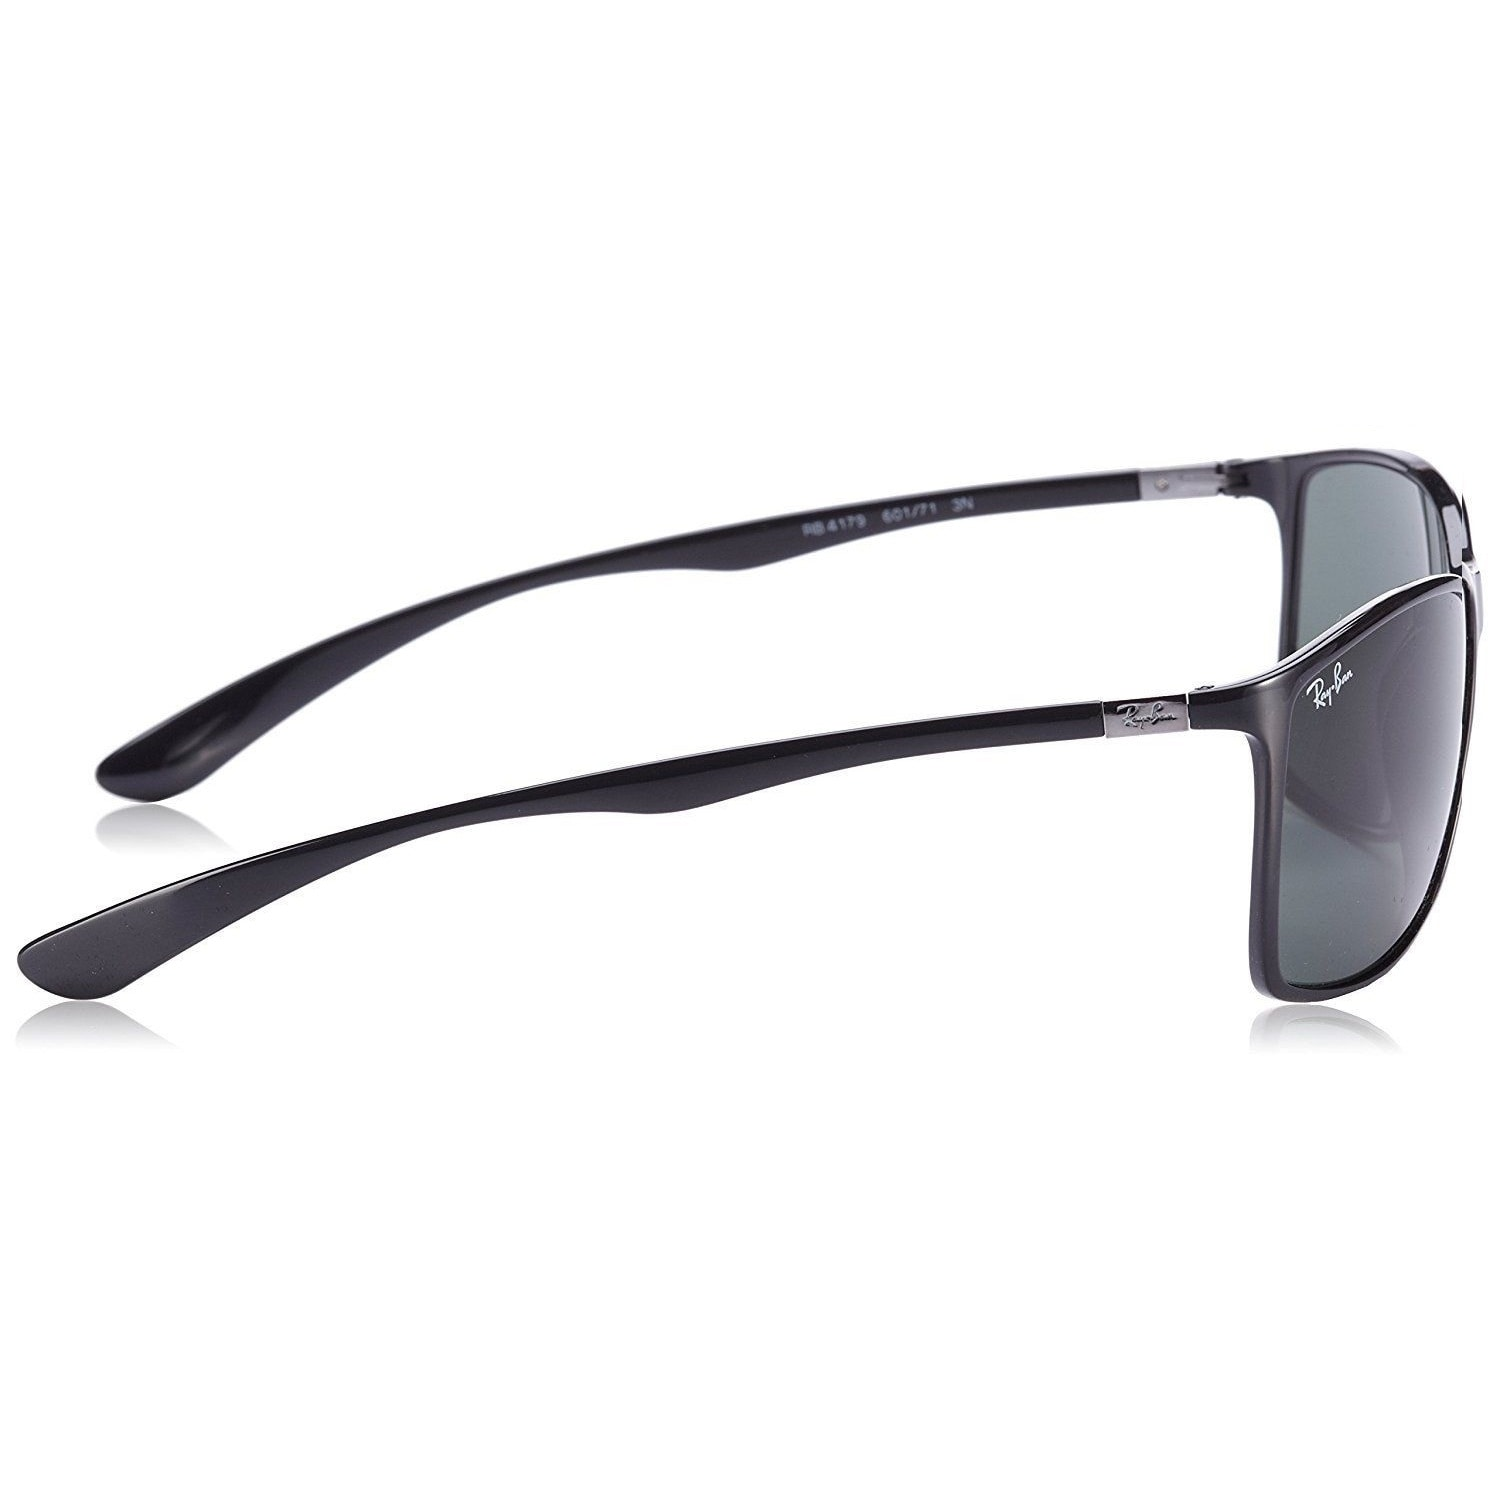 ad4a577cb0 Shop Ray-Ban RB4179 601 71 Men s Black Frame Green Classic 62mm Lens  Sunglasses - Free Shipping Today - Overstock - 15288087